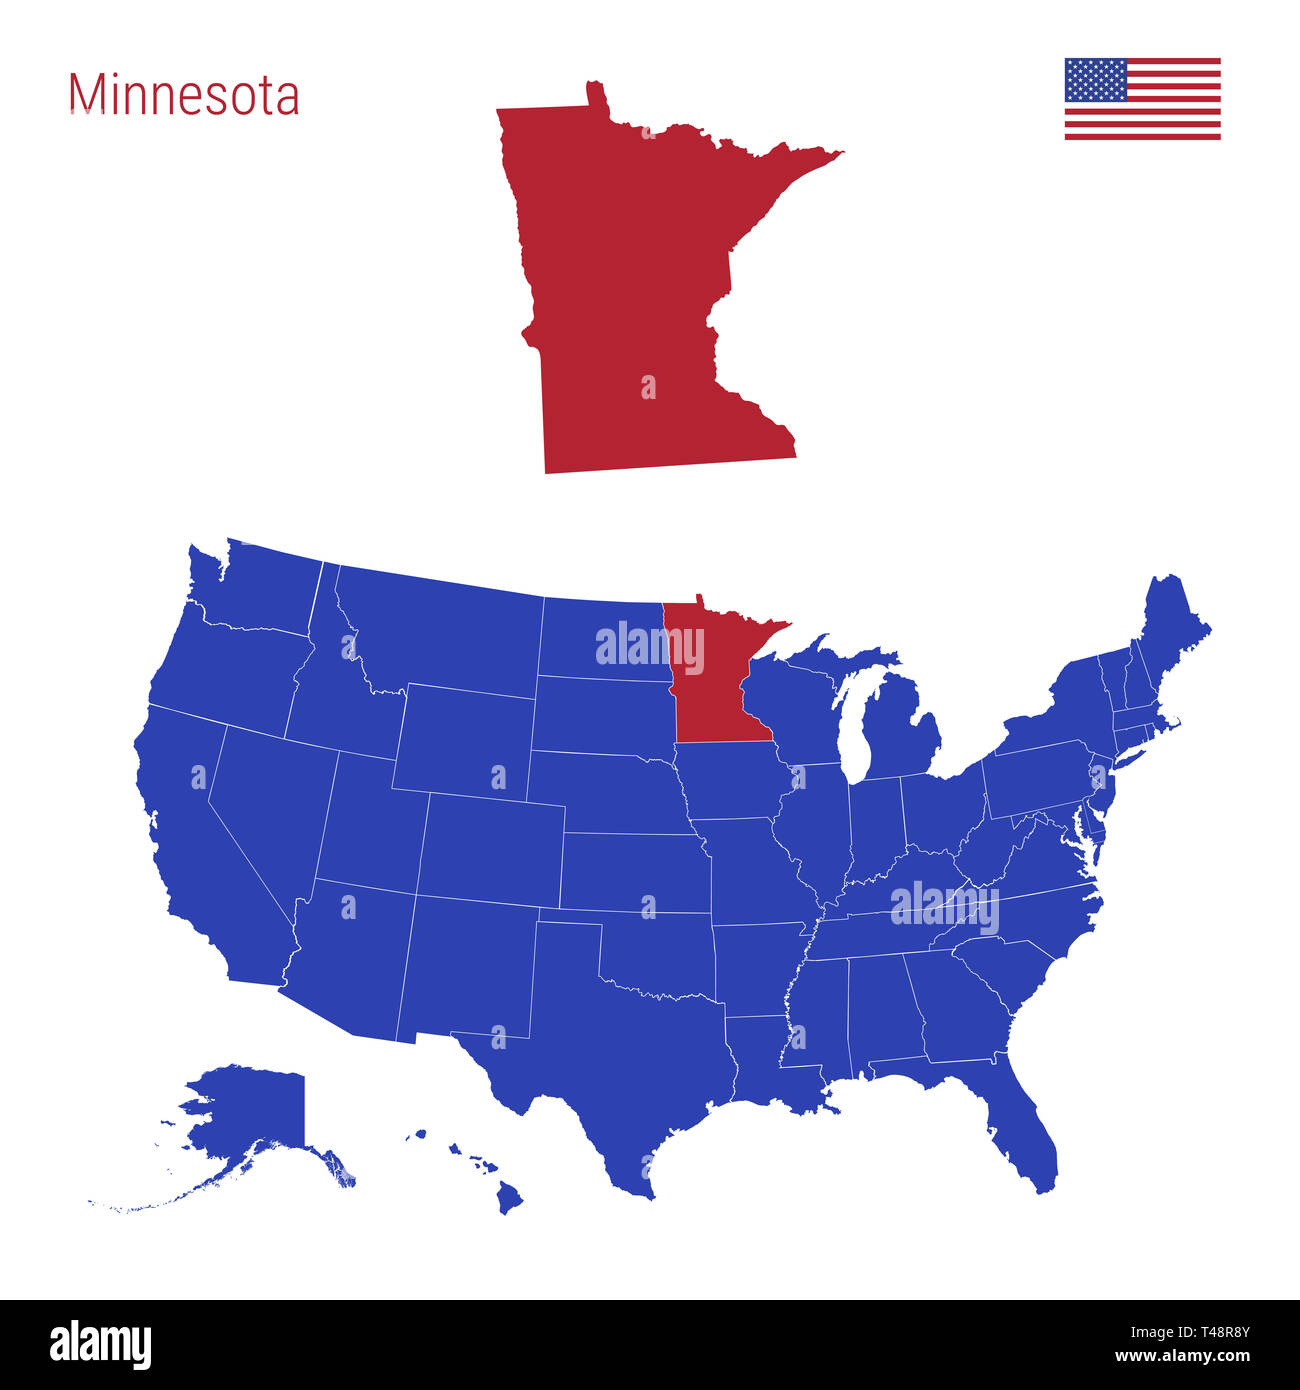 Minnesota State Map Stock Photos & Minnesota State Map Stock Images ...